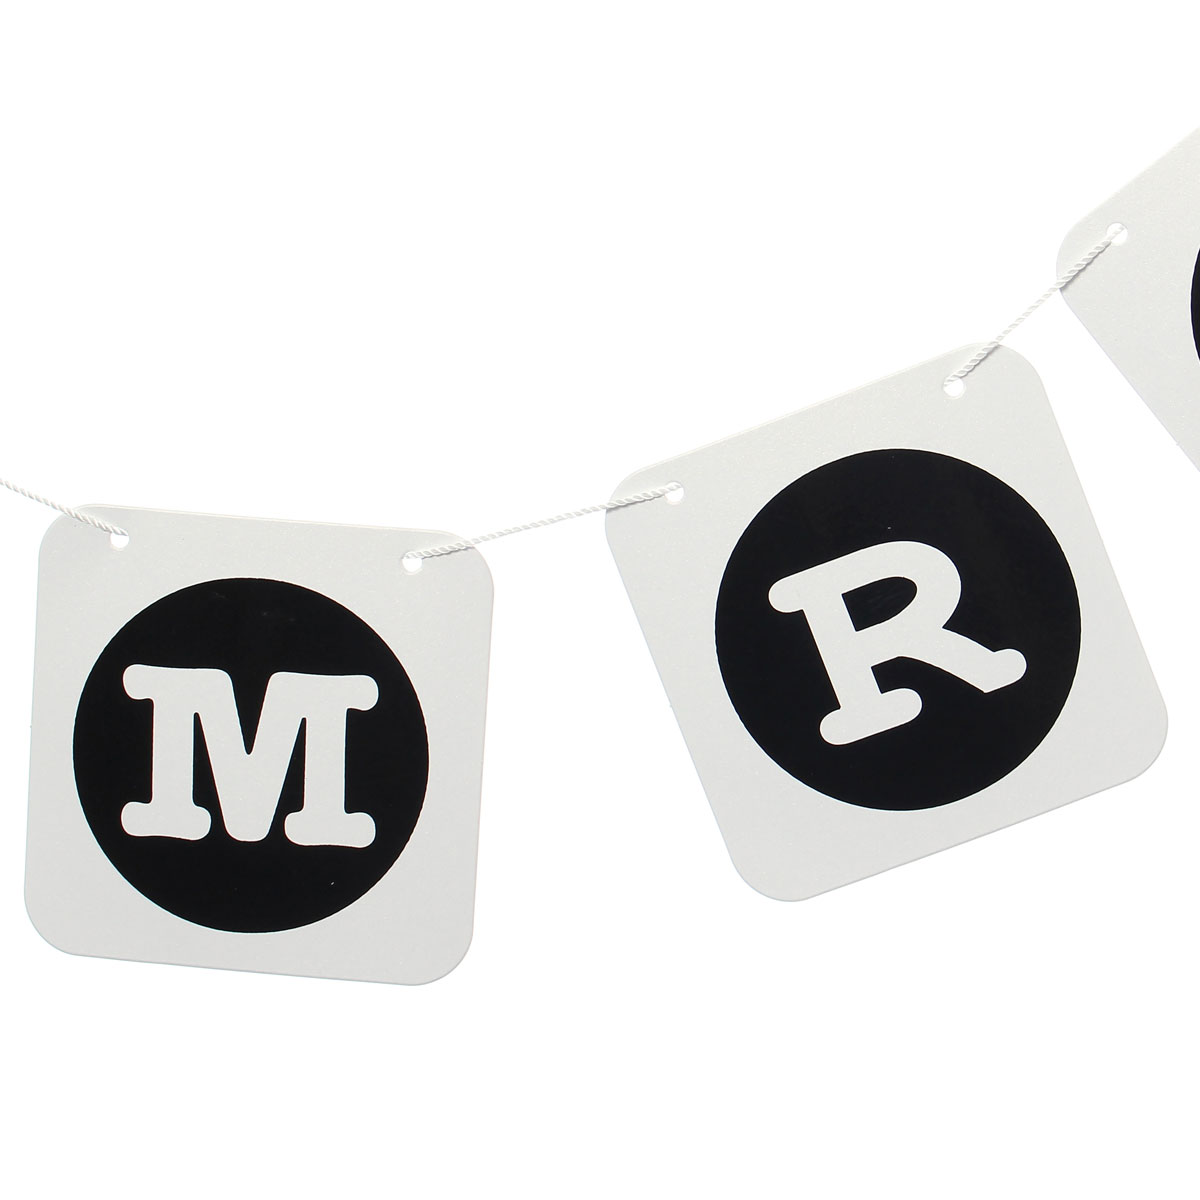 MR MRS Heart Hanging Paper Garland Chain Wedding Party Bunting Banner Decoration